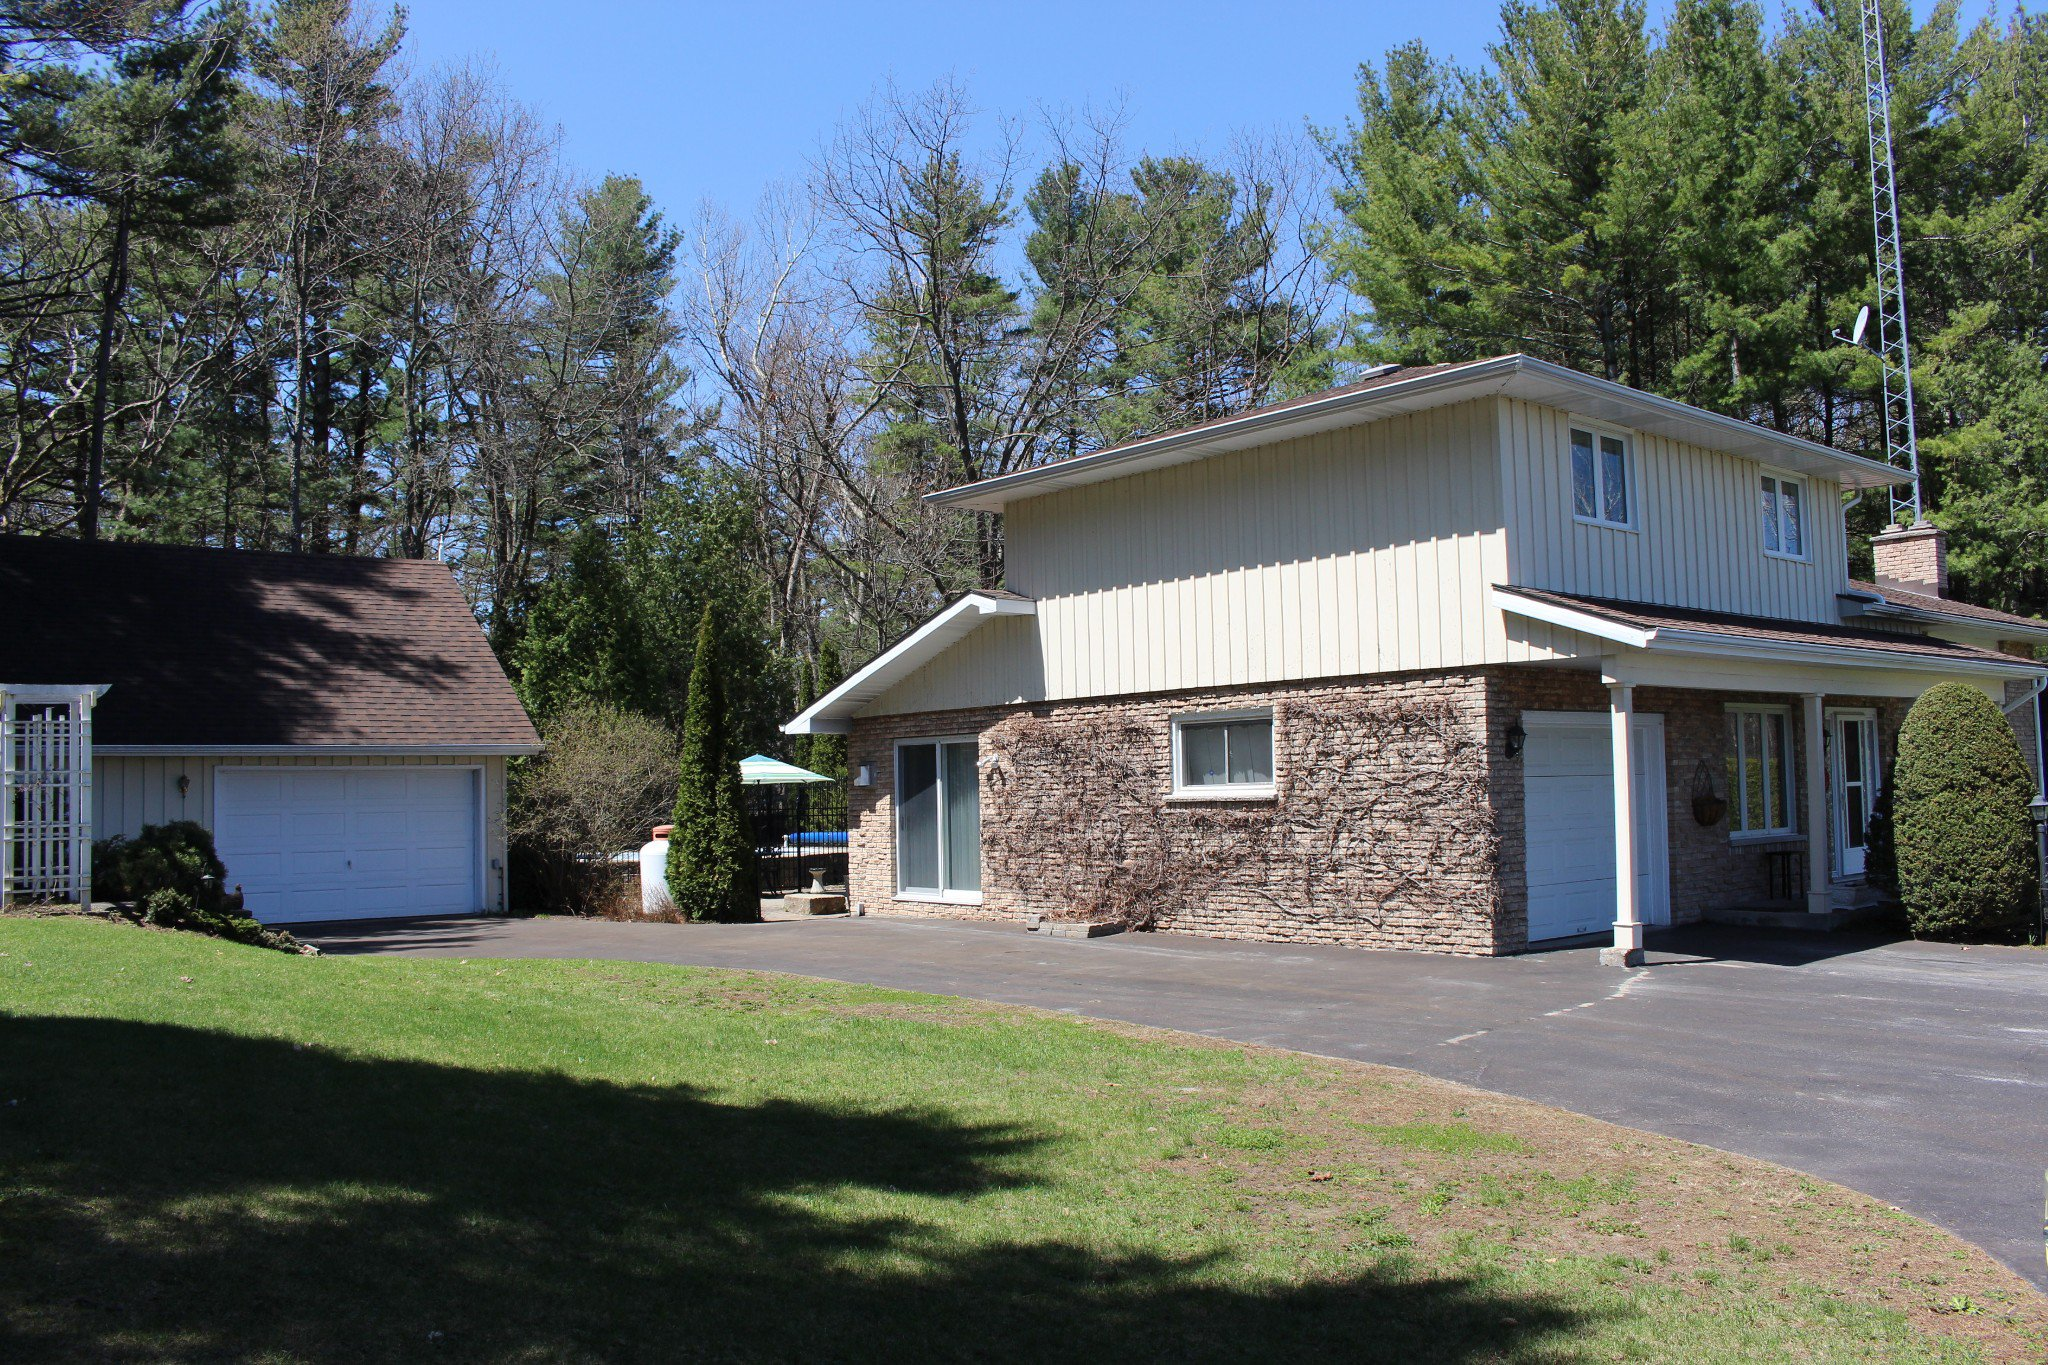 Photo 2: Photos: 5144 Oak Hills Road in Bewdley: Residential Detached for sale : MLS®# 125303